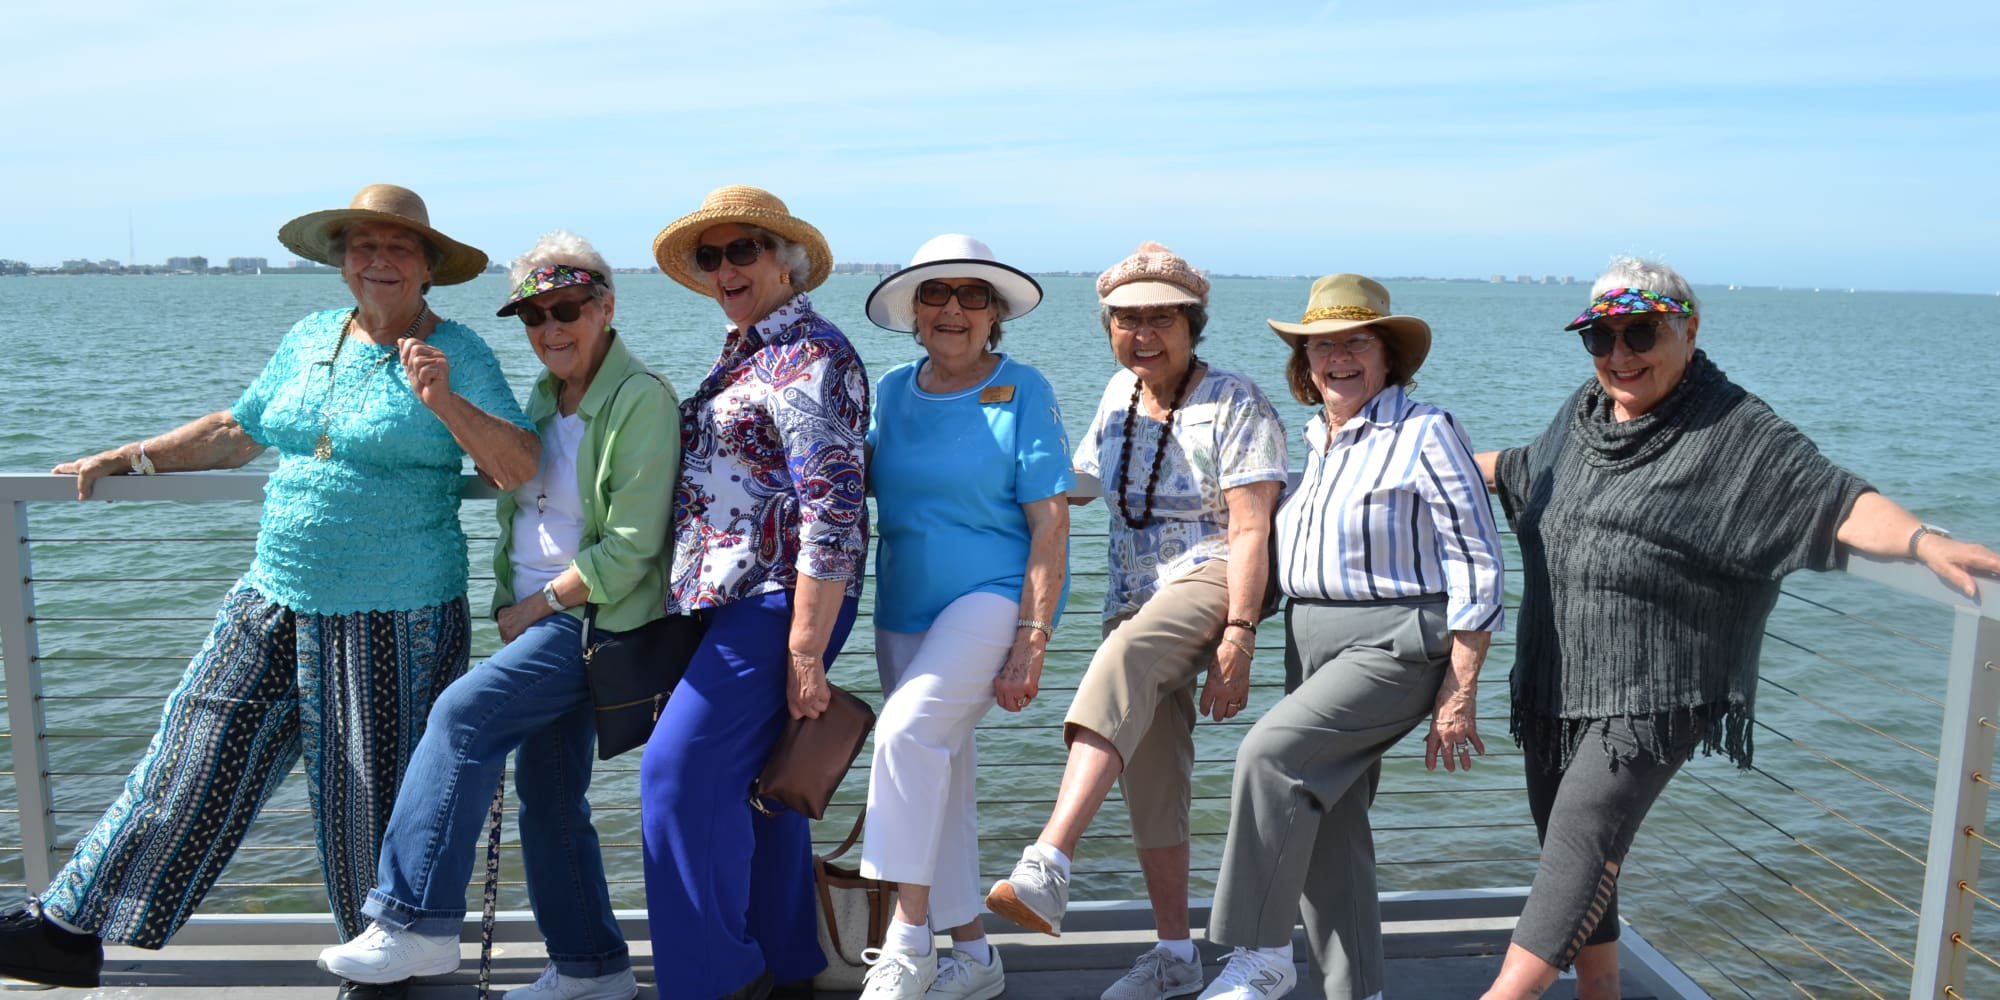 Residents from The Palms at LaQuinta Gracious Retirement Living in La Quinta, California posing on the waterfront